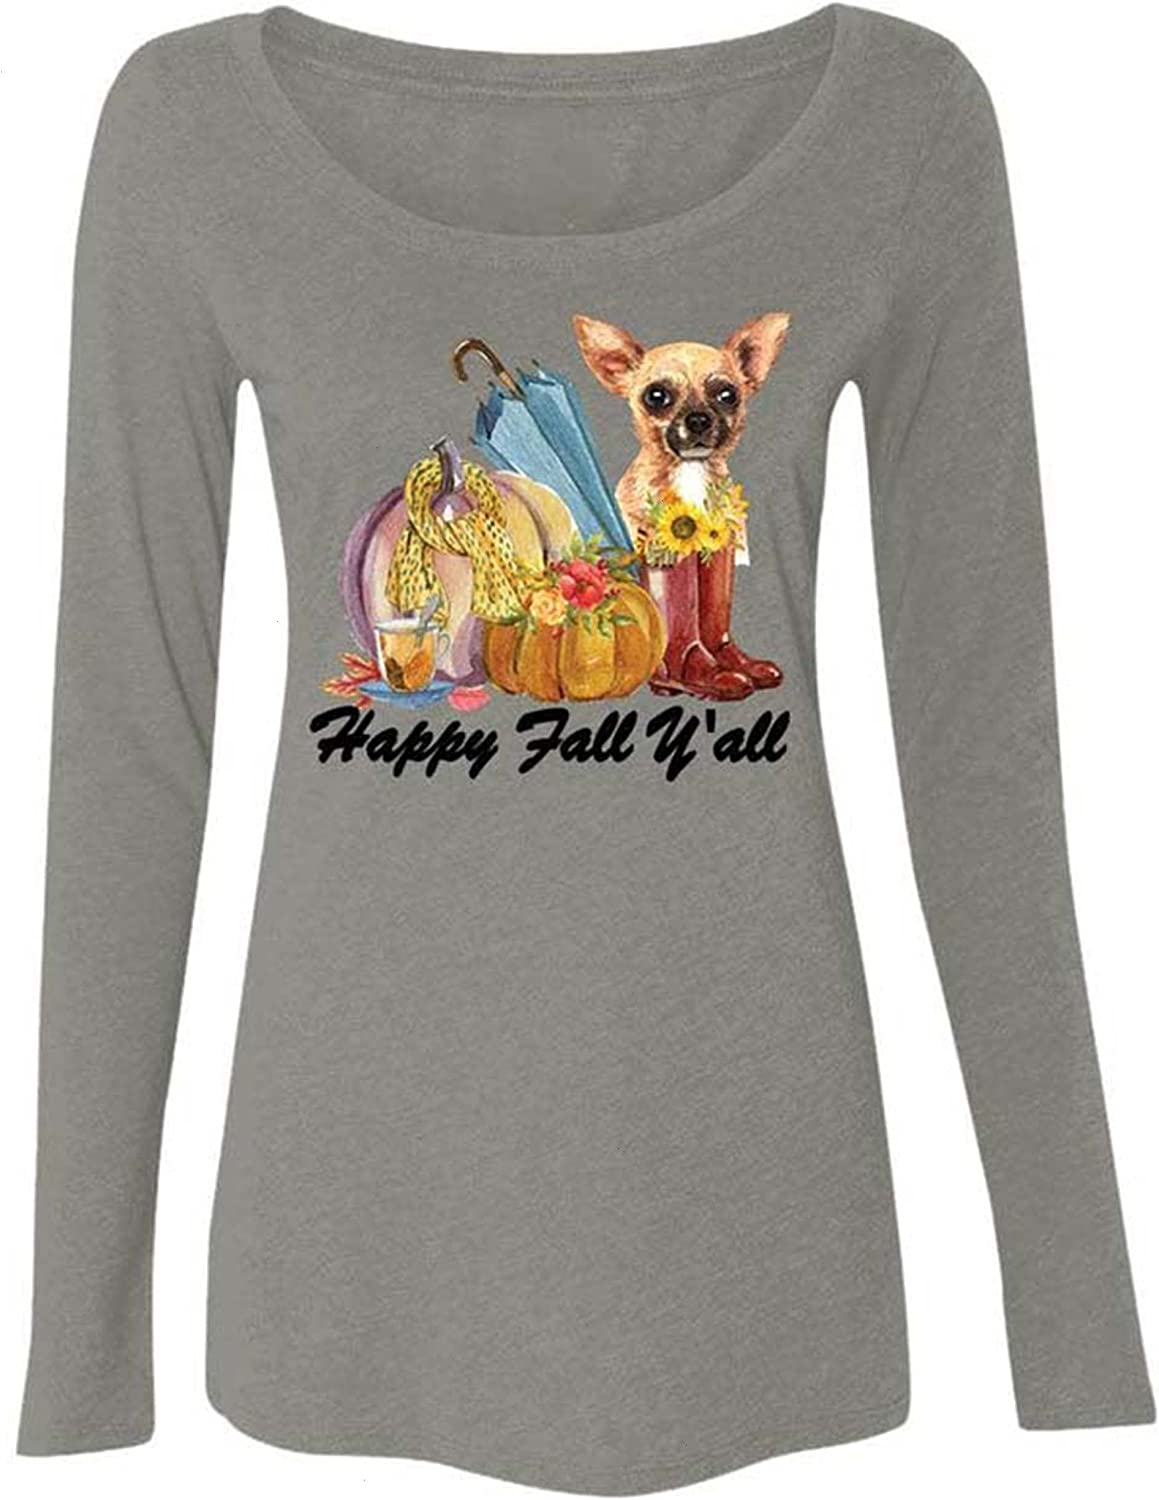 Happy Fall Y'All Chihuahua Autumn Dog Lover Sweatshirt, Autumn Leaves Lovers Shirt, Womens Dog Autumn Fall Graphic Tees